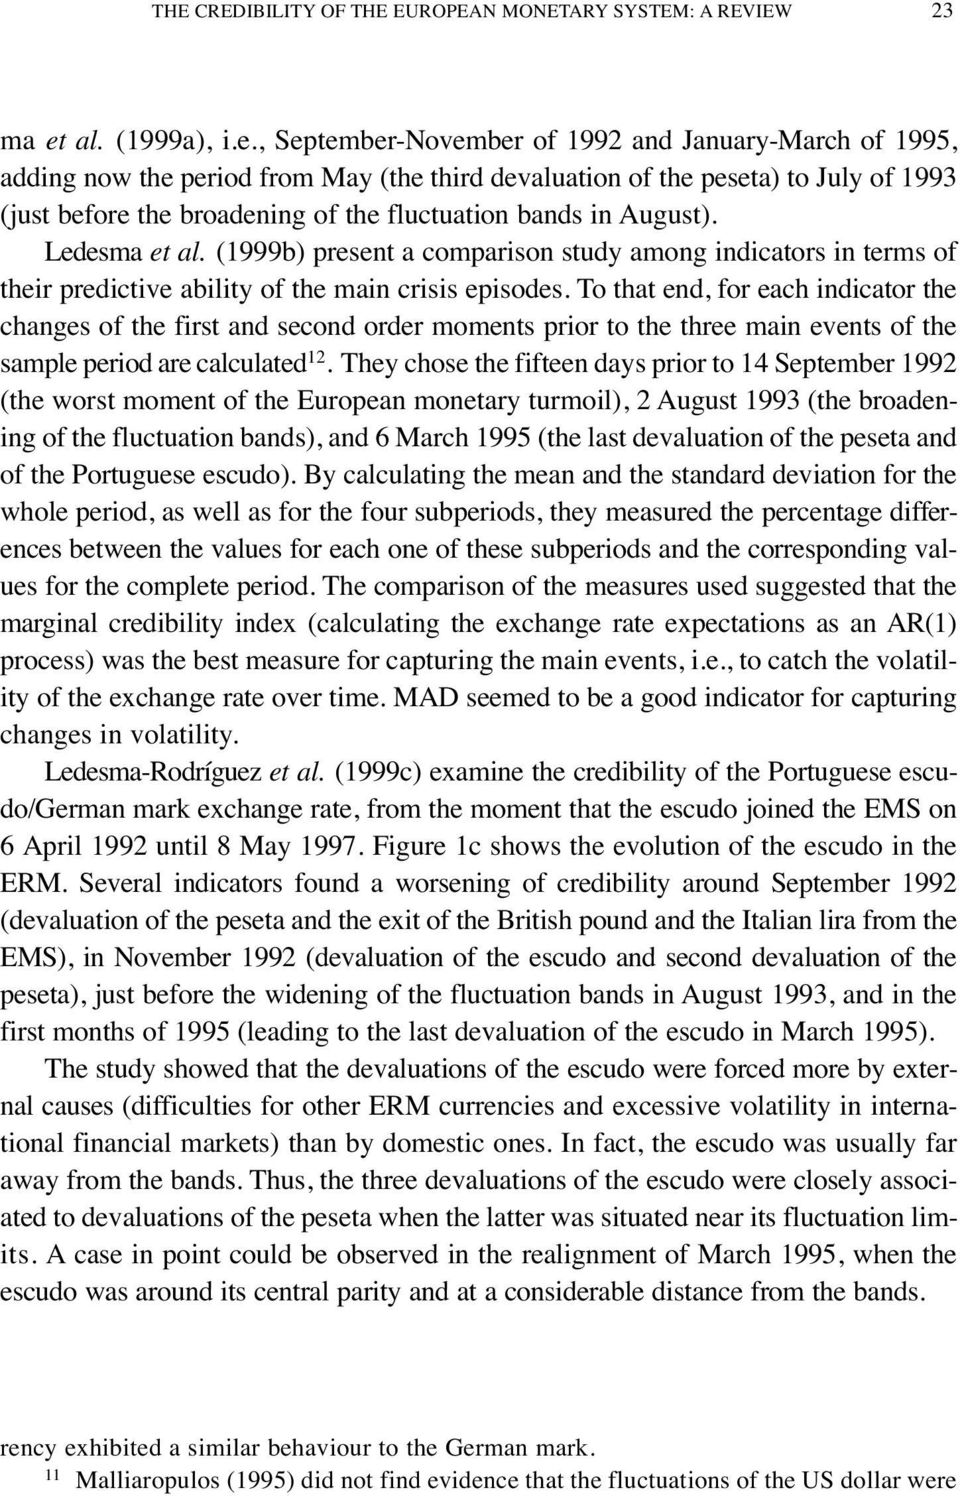 , September-November of 1992 and January-March of 1995, adding now the period from May (the third devaluation of the peseta) to July of 1993 (just before the broadening of the fluctuation bands in